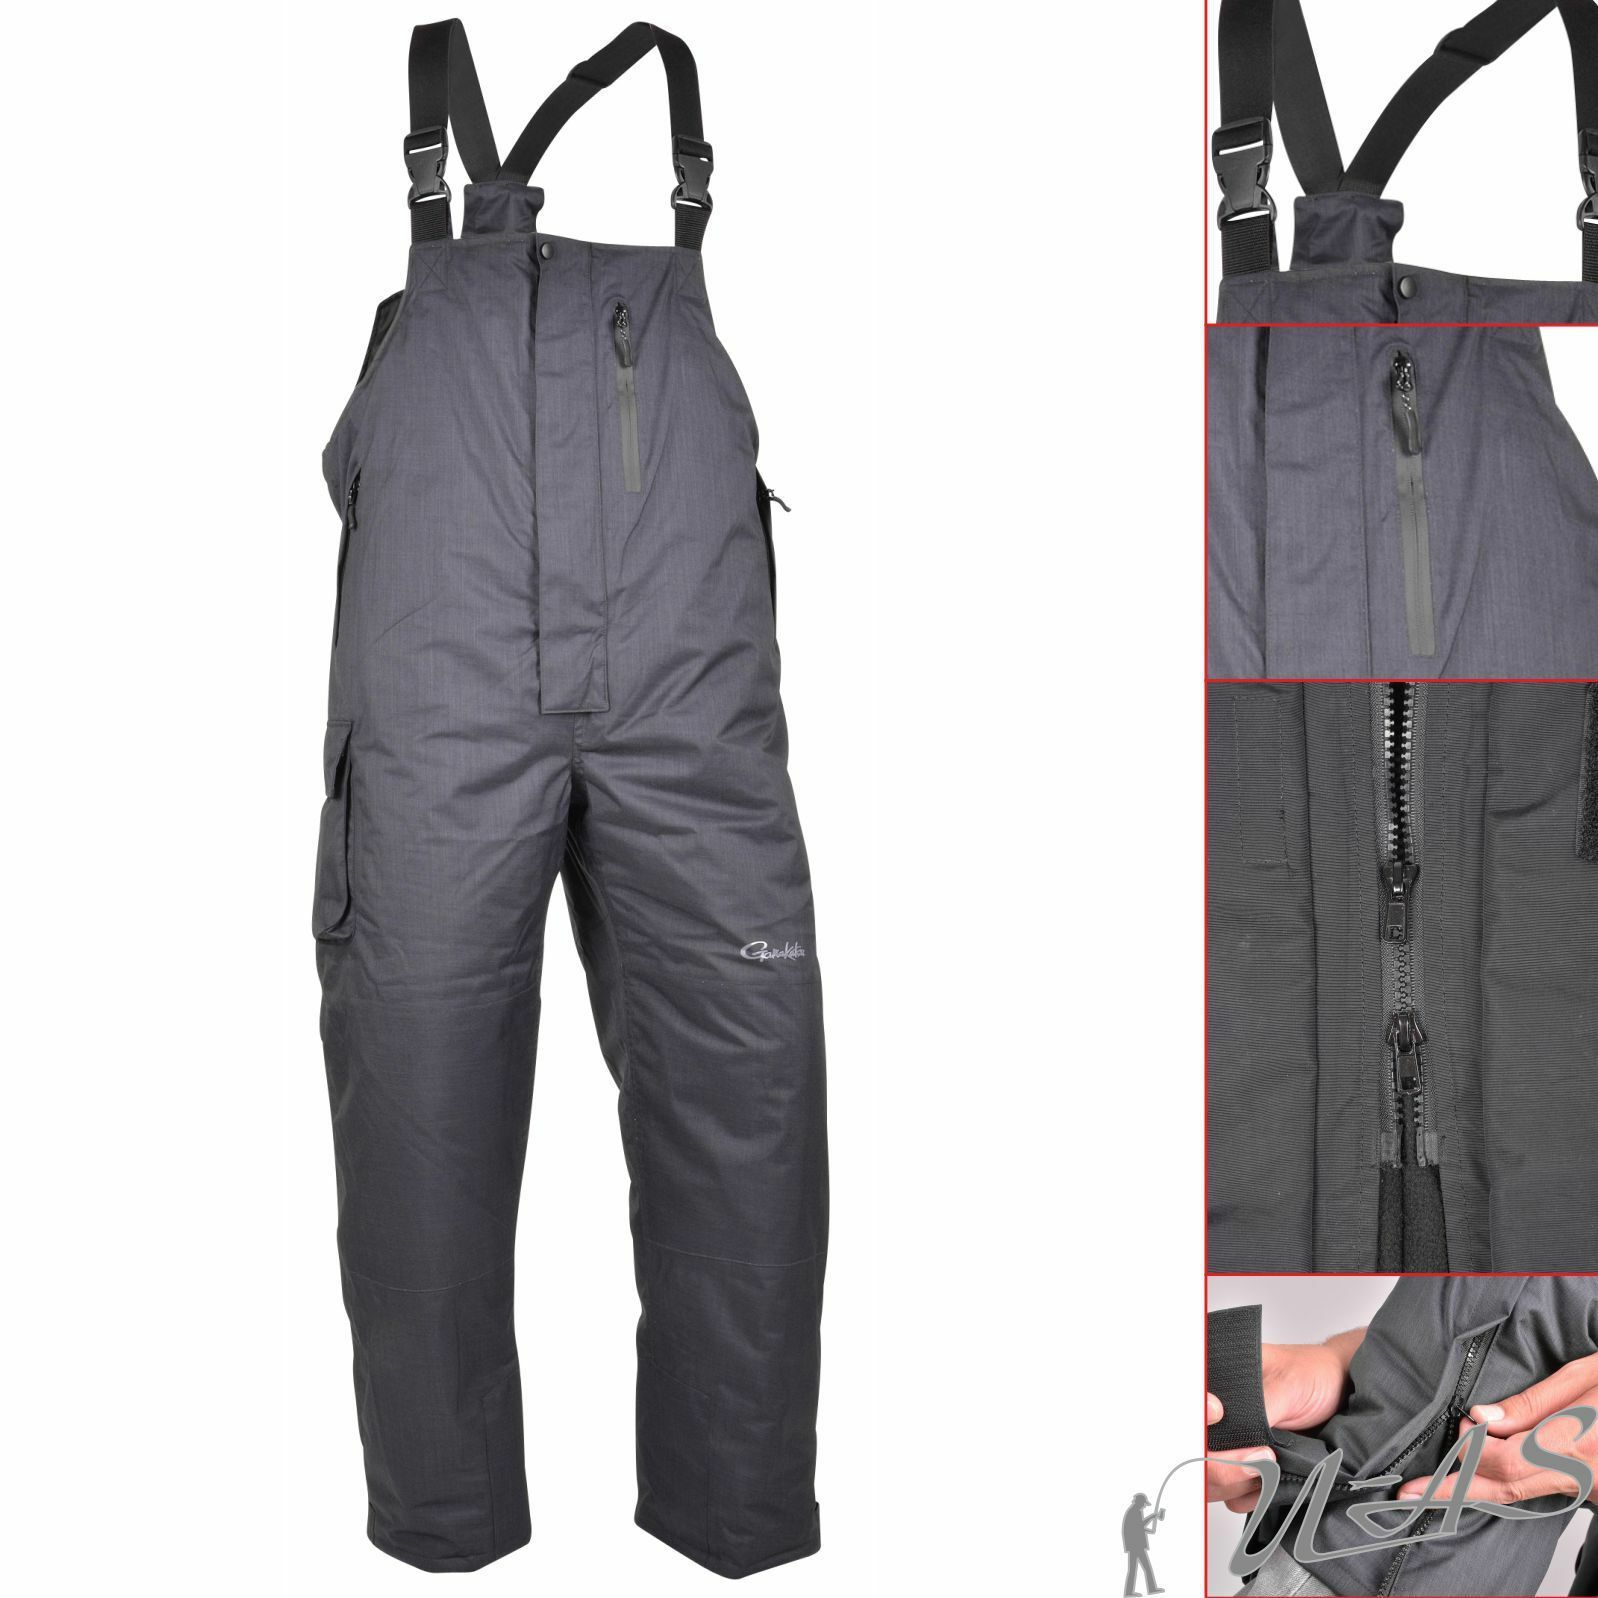 SPRO GAMAKATSU PANTS THERMAL PANTS GAMAKATSU HOSE GR. M ZU THERMOANZUG THERMAL ANGELANZUG SHA 910472